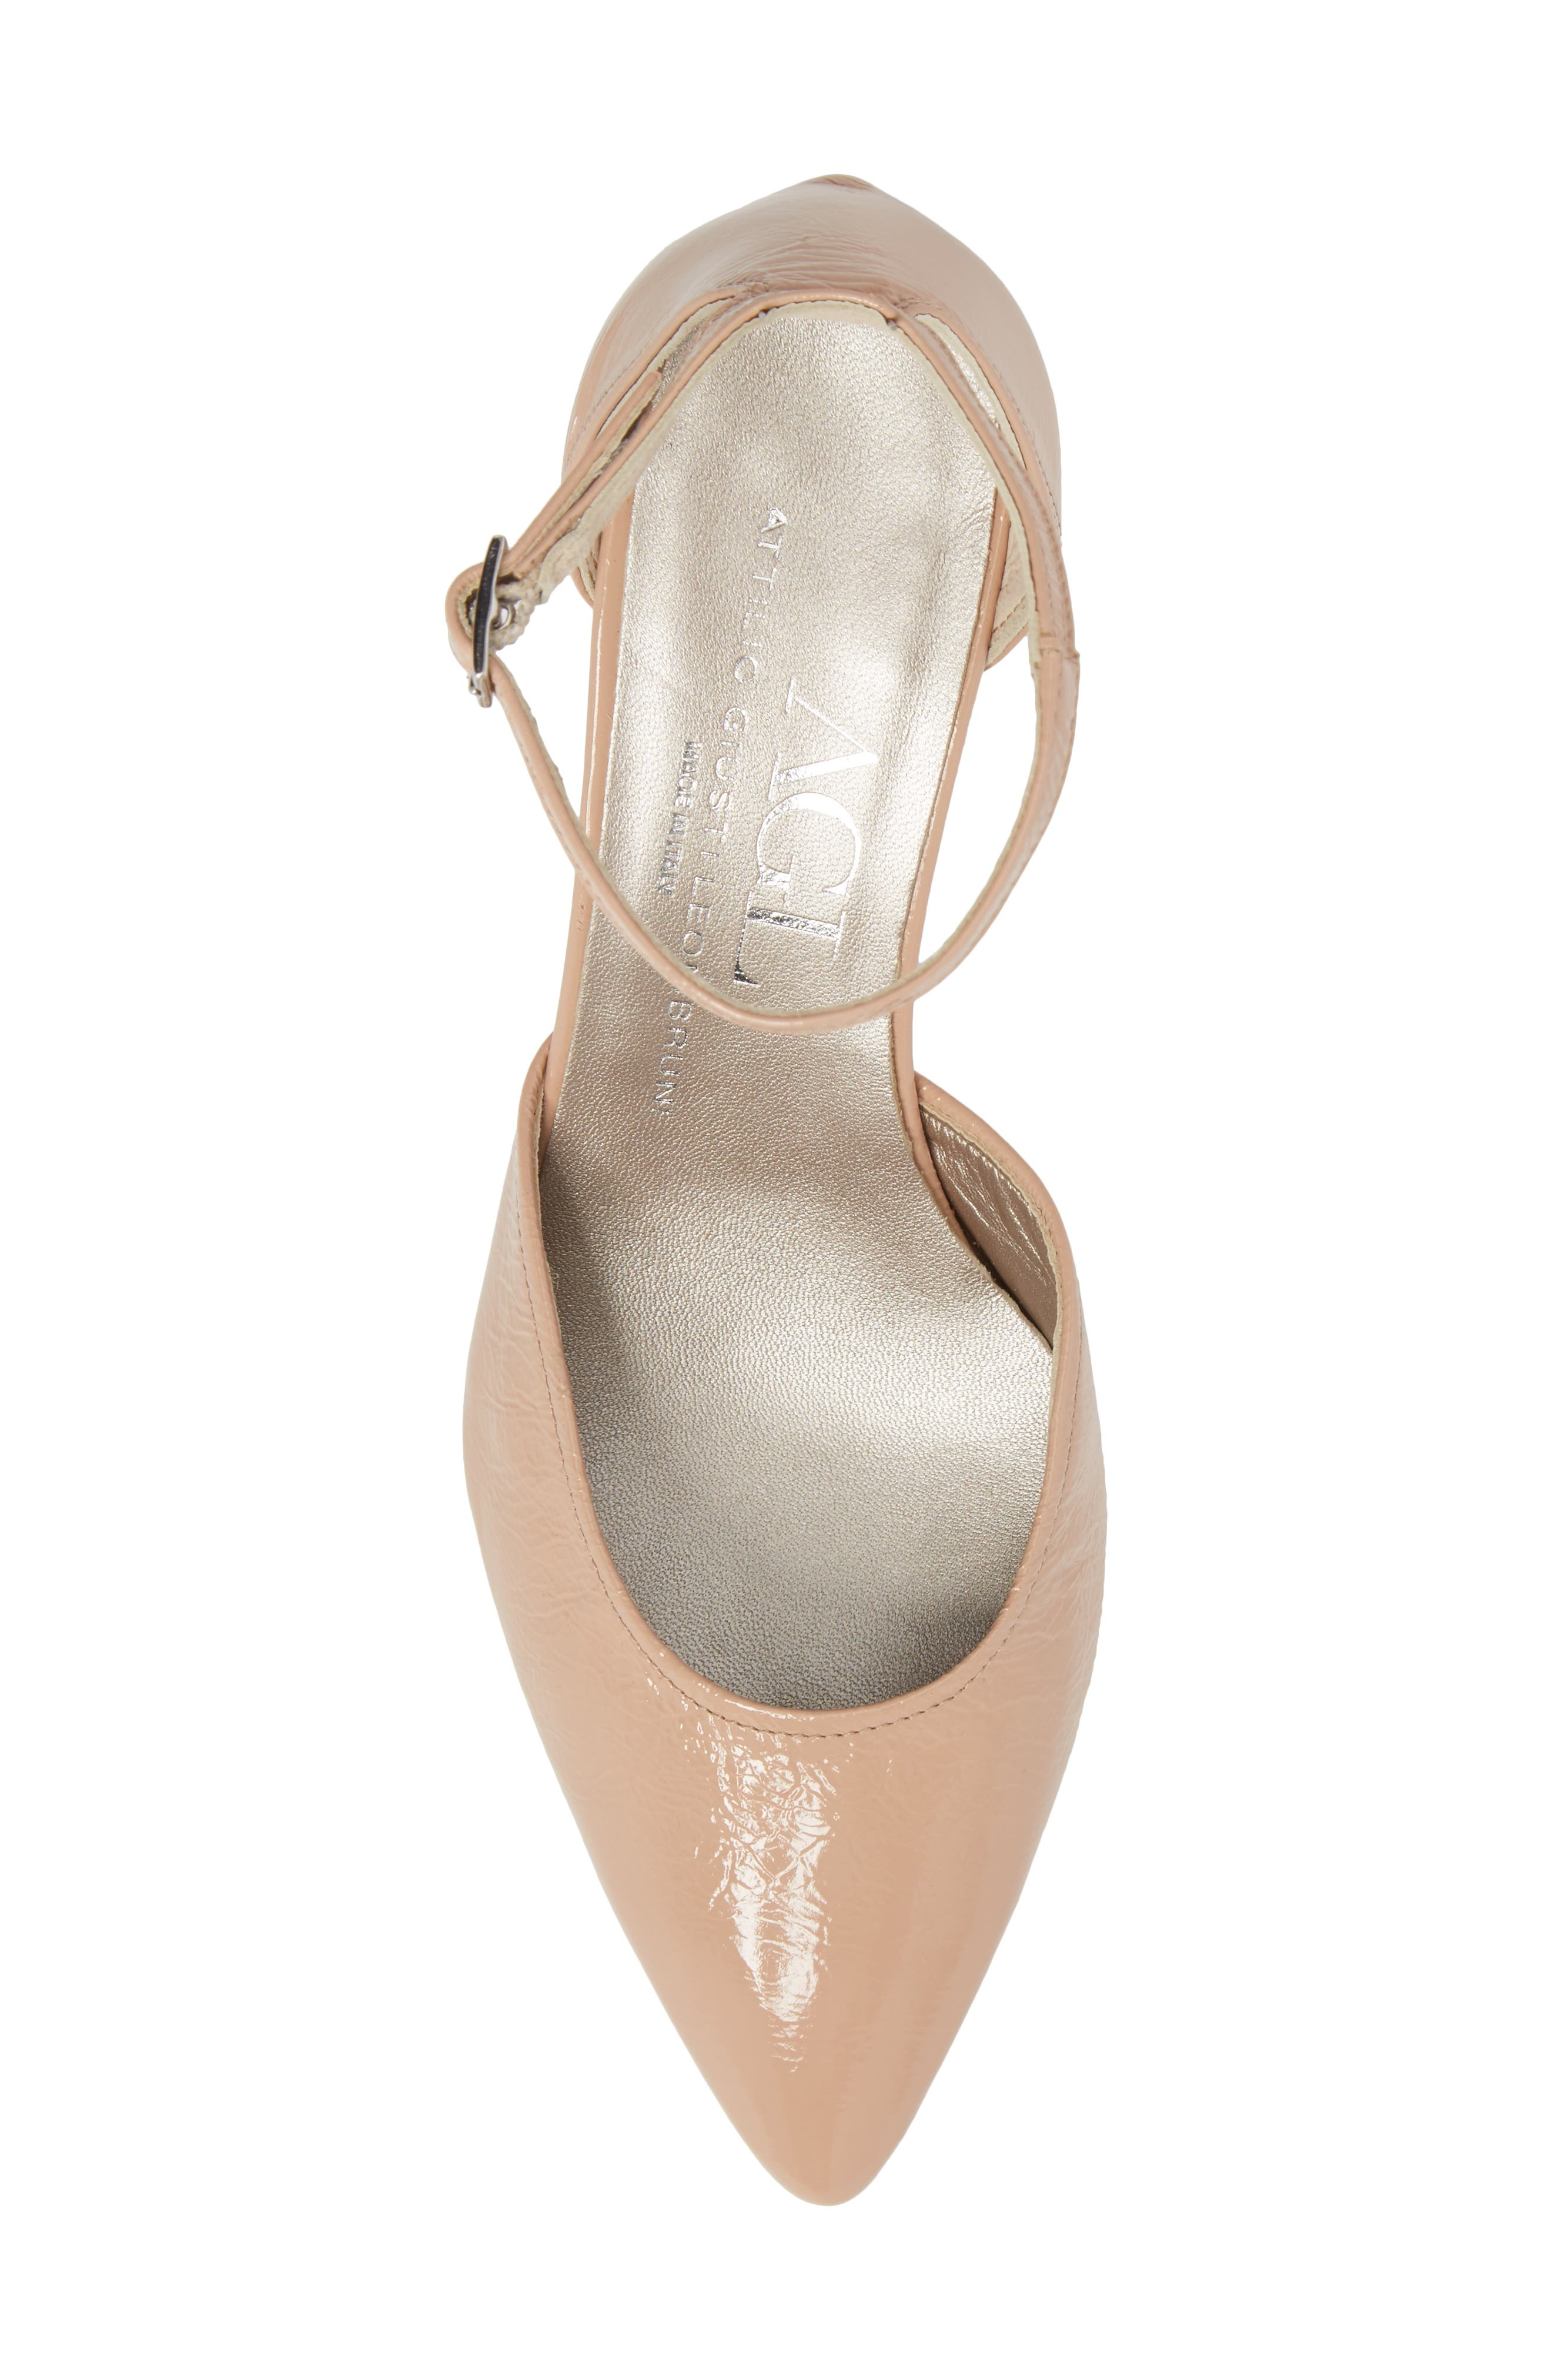 d'Orsay Ankle Strap Pump,                             Alternate thumbnail 5, color,                             Nude Glammy Leather